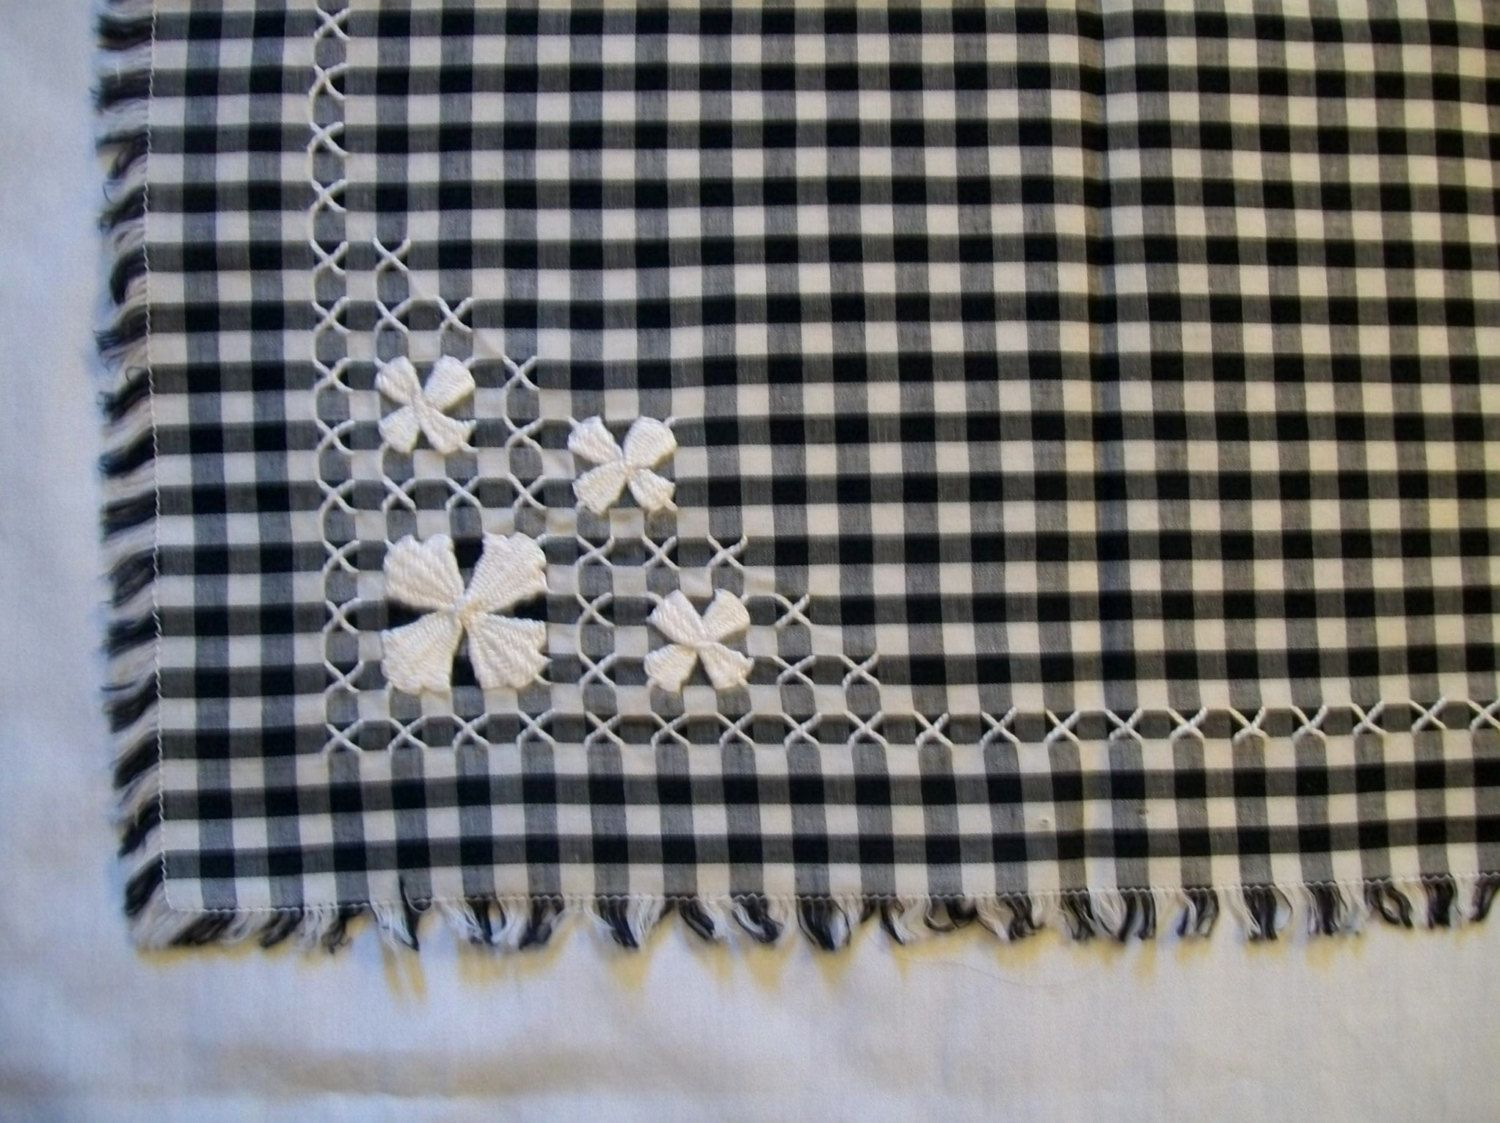 Small Tablecloth, Black Tablcloth, Gingham Tablecloth, Black And White  Gingham Tablecloth, Chicken Scratch Embroidery By VintagePlusCrafts On Etsy